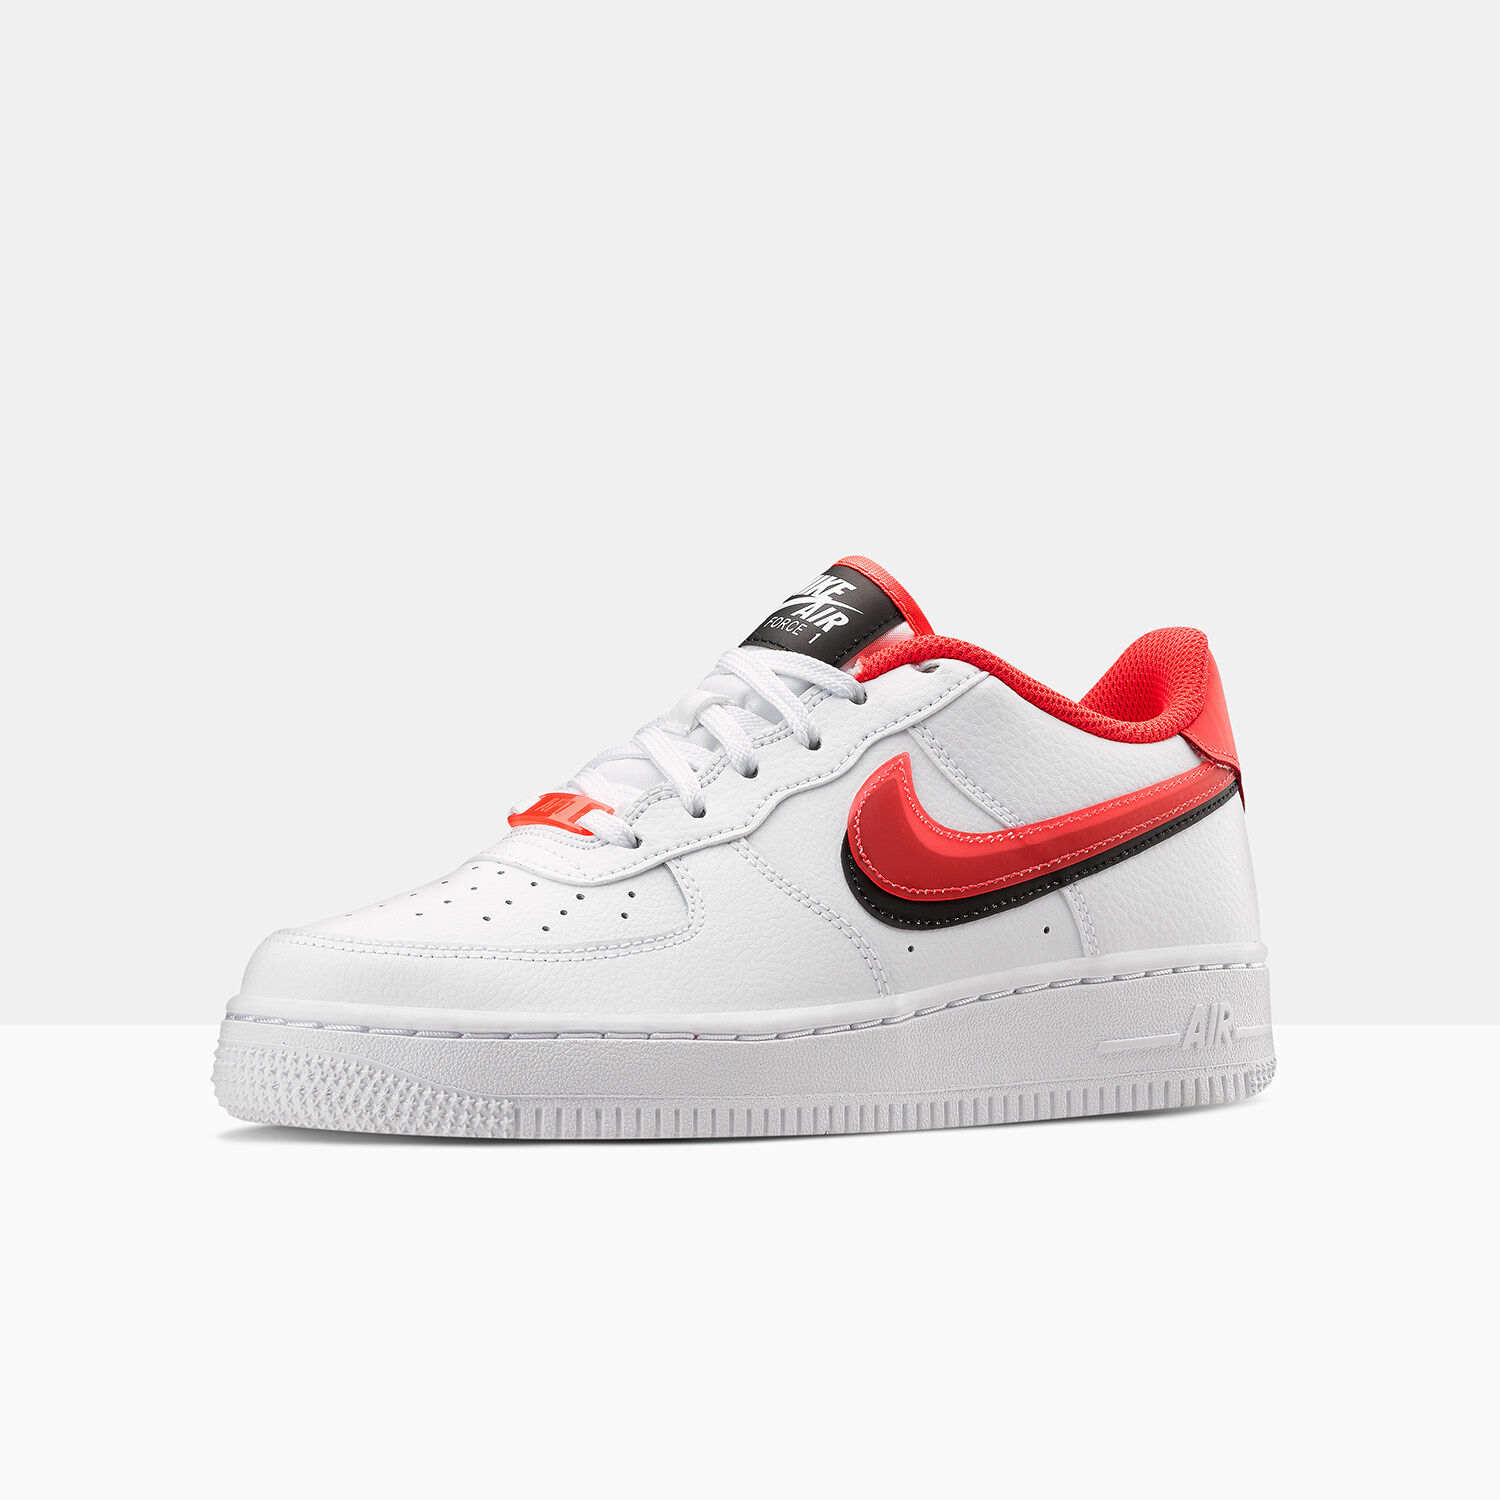 NIKE AIR FORCE 1 LV8 bianche, rosse e nere – AW LAB